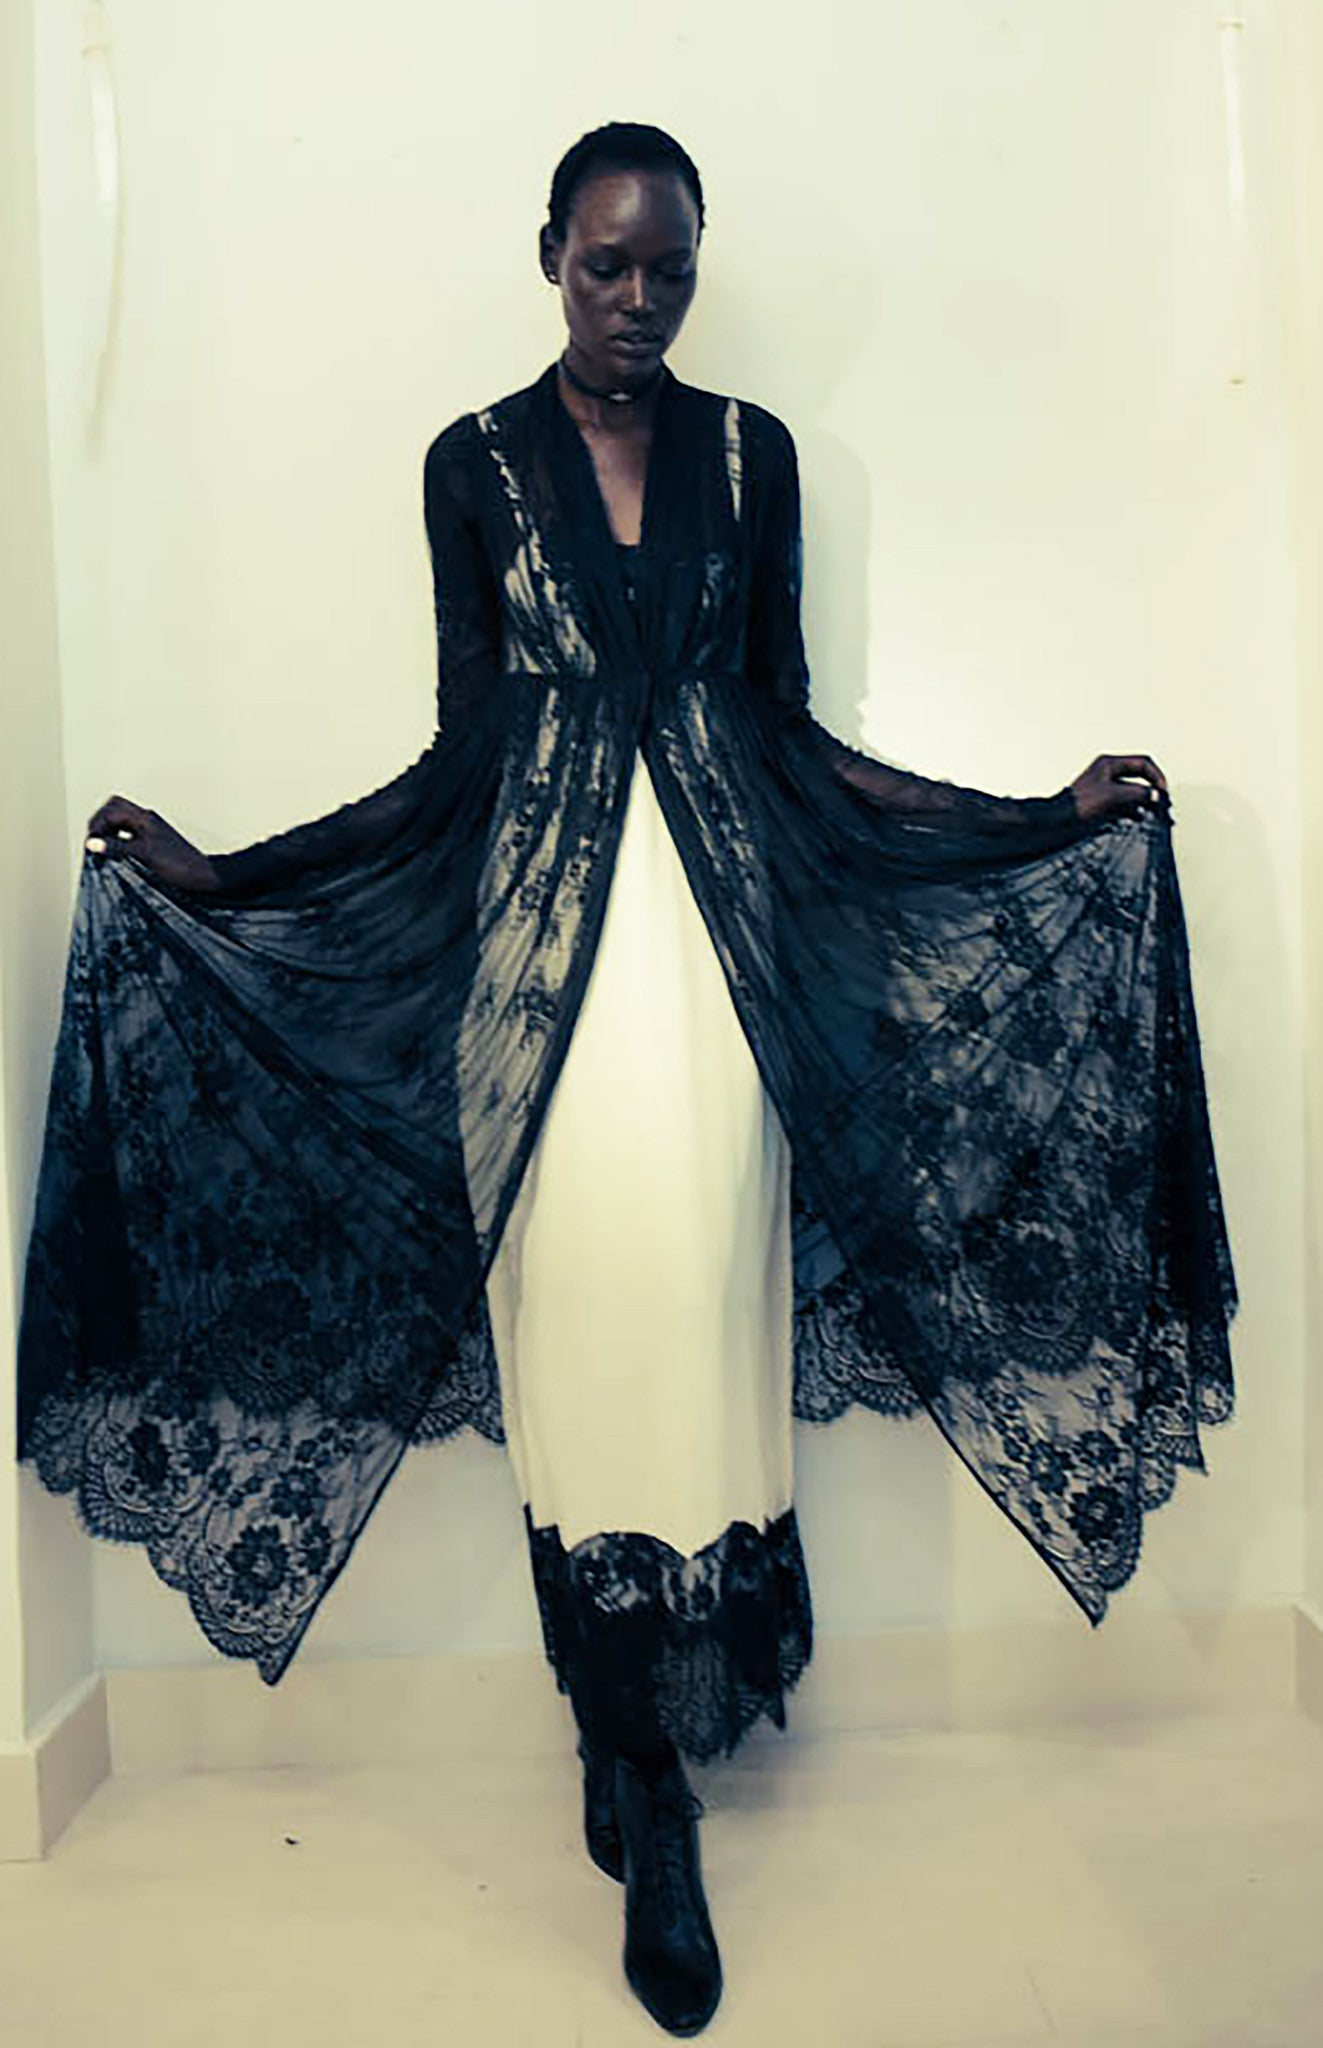 Ajak Deng IMG Model Crepe de Chine Slip Dress with French Lace Wendy Nichol Clothing Fashion Designer Handmade in NYC Custom Tailoring Fashion Runway show SS15